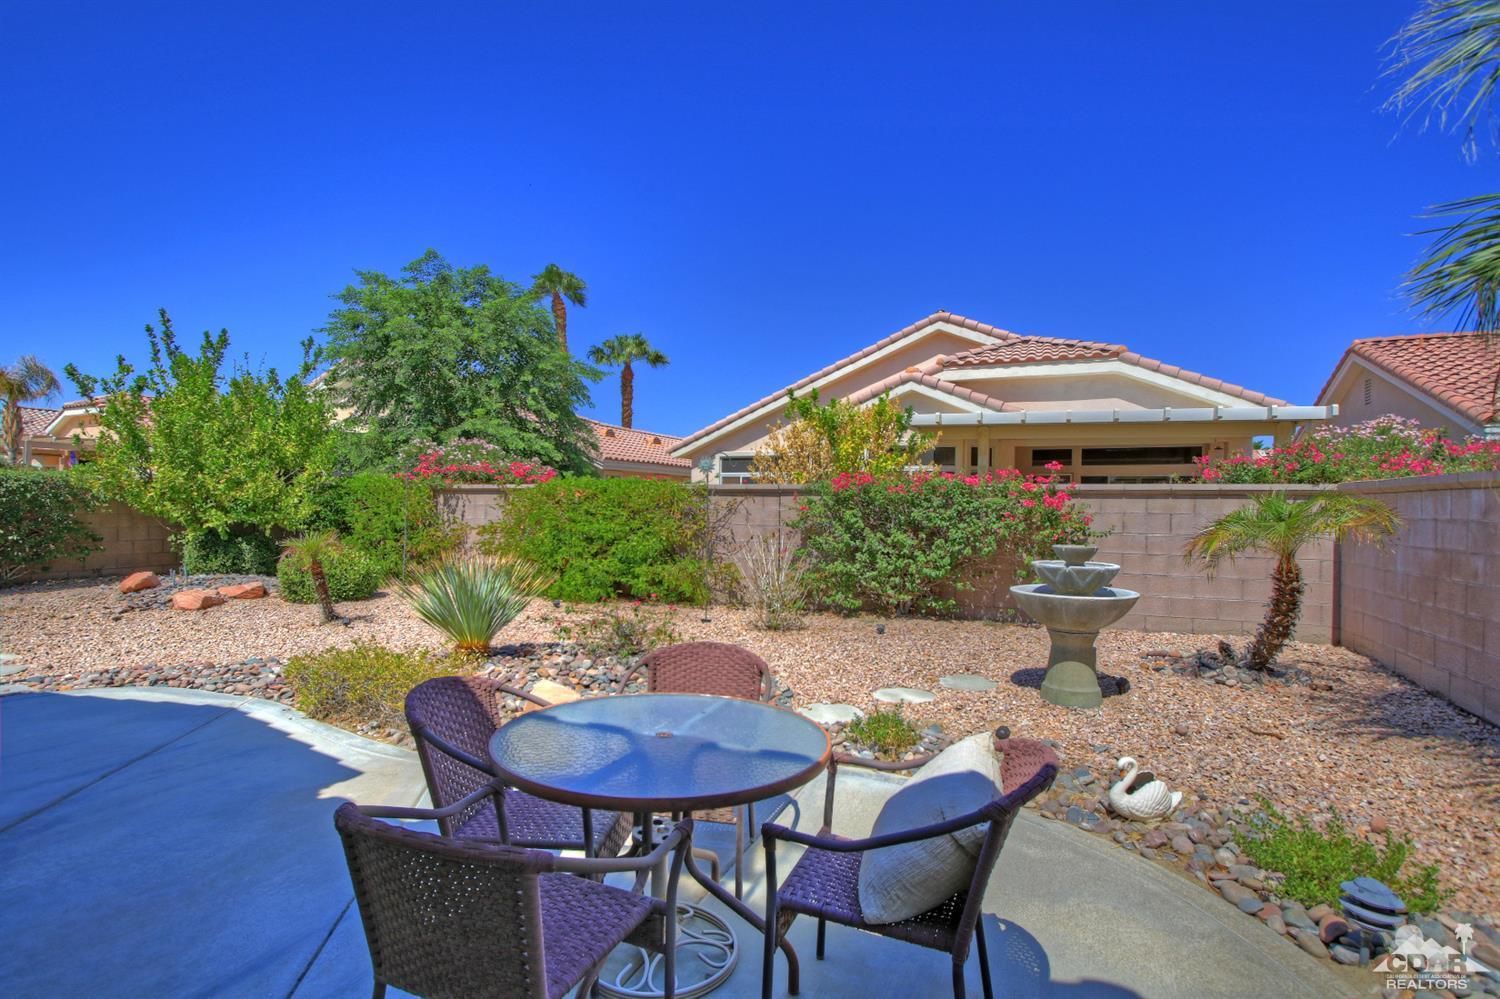 78908 Waterford Lane, Palm Desert, CA 92211